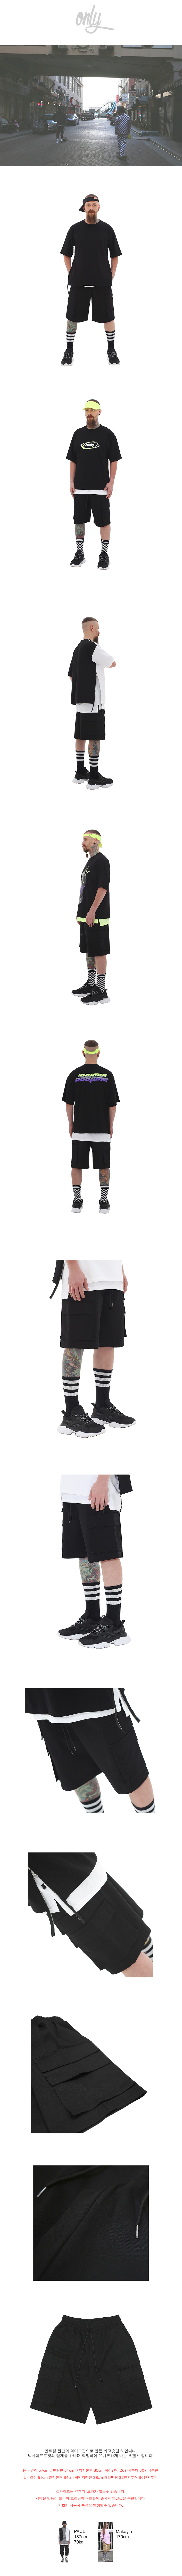 Double%20Cargo%20Short%20Pant-%20Black.jpg